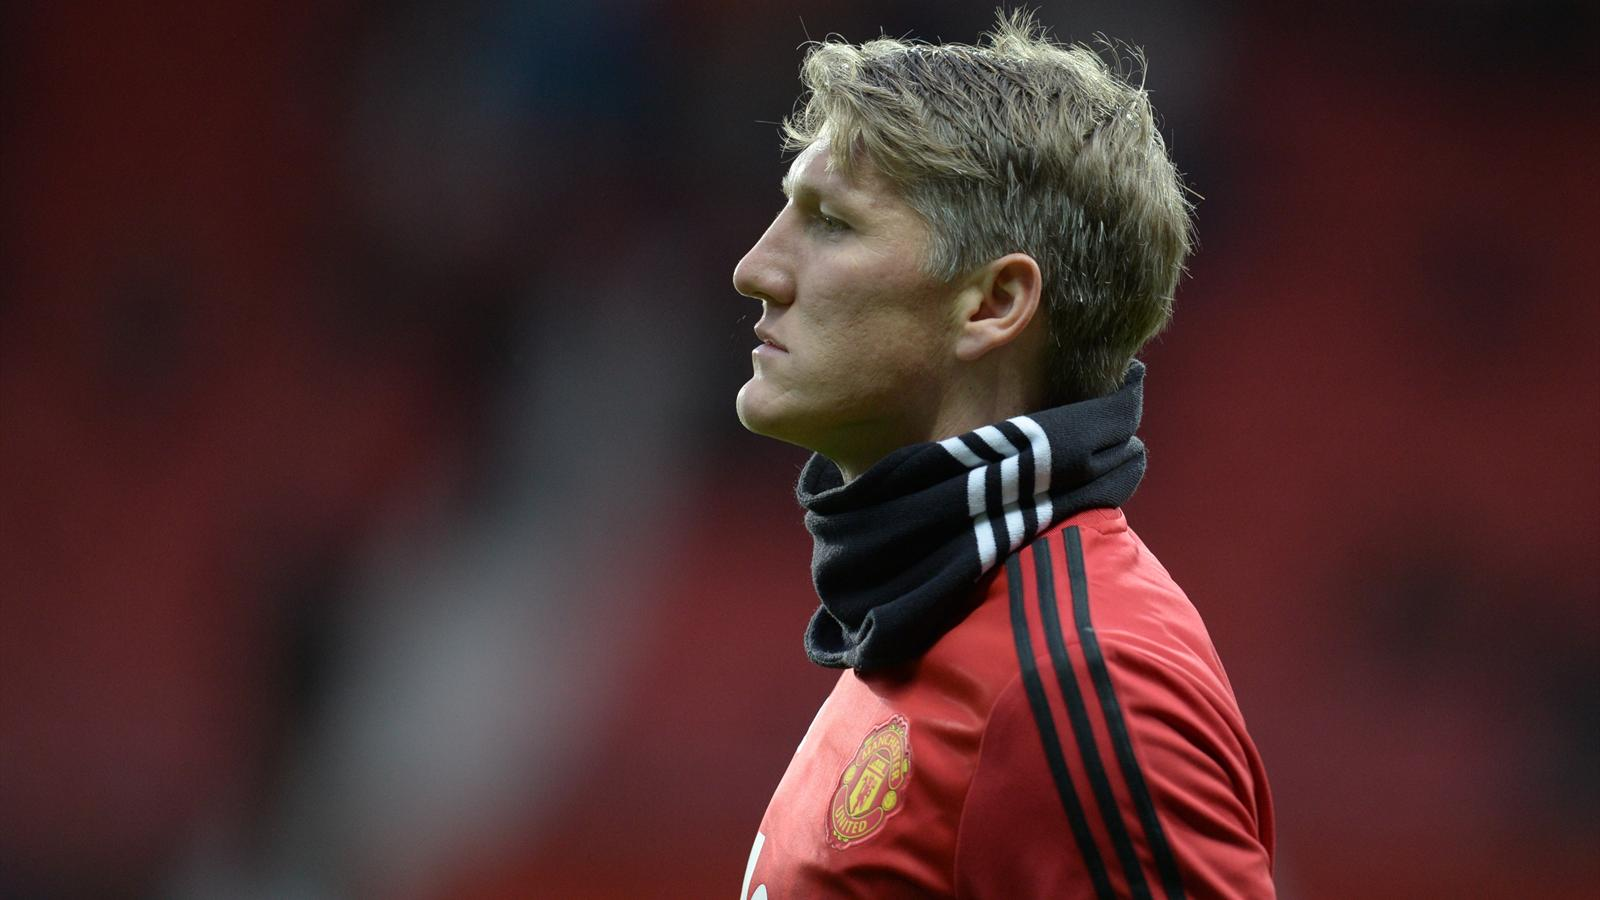 Manchester United's German midfielder Bastian Schweinsteiger warms up